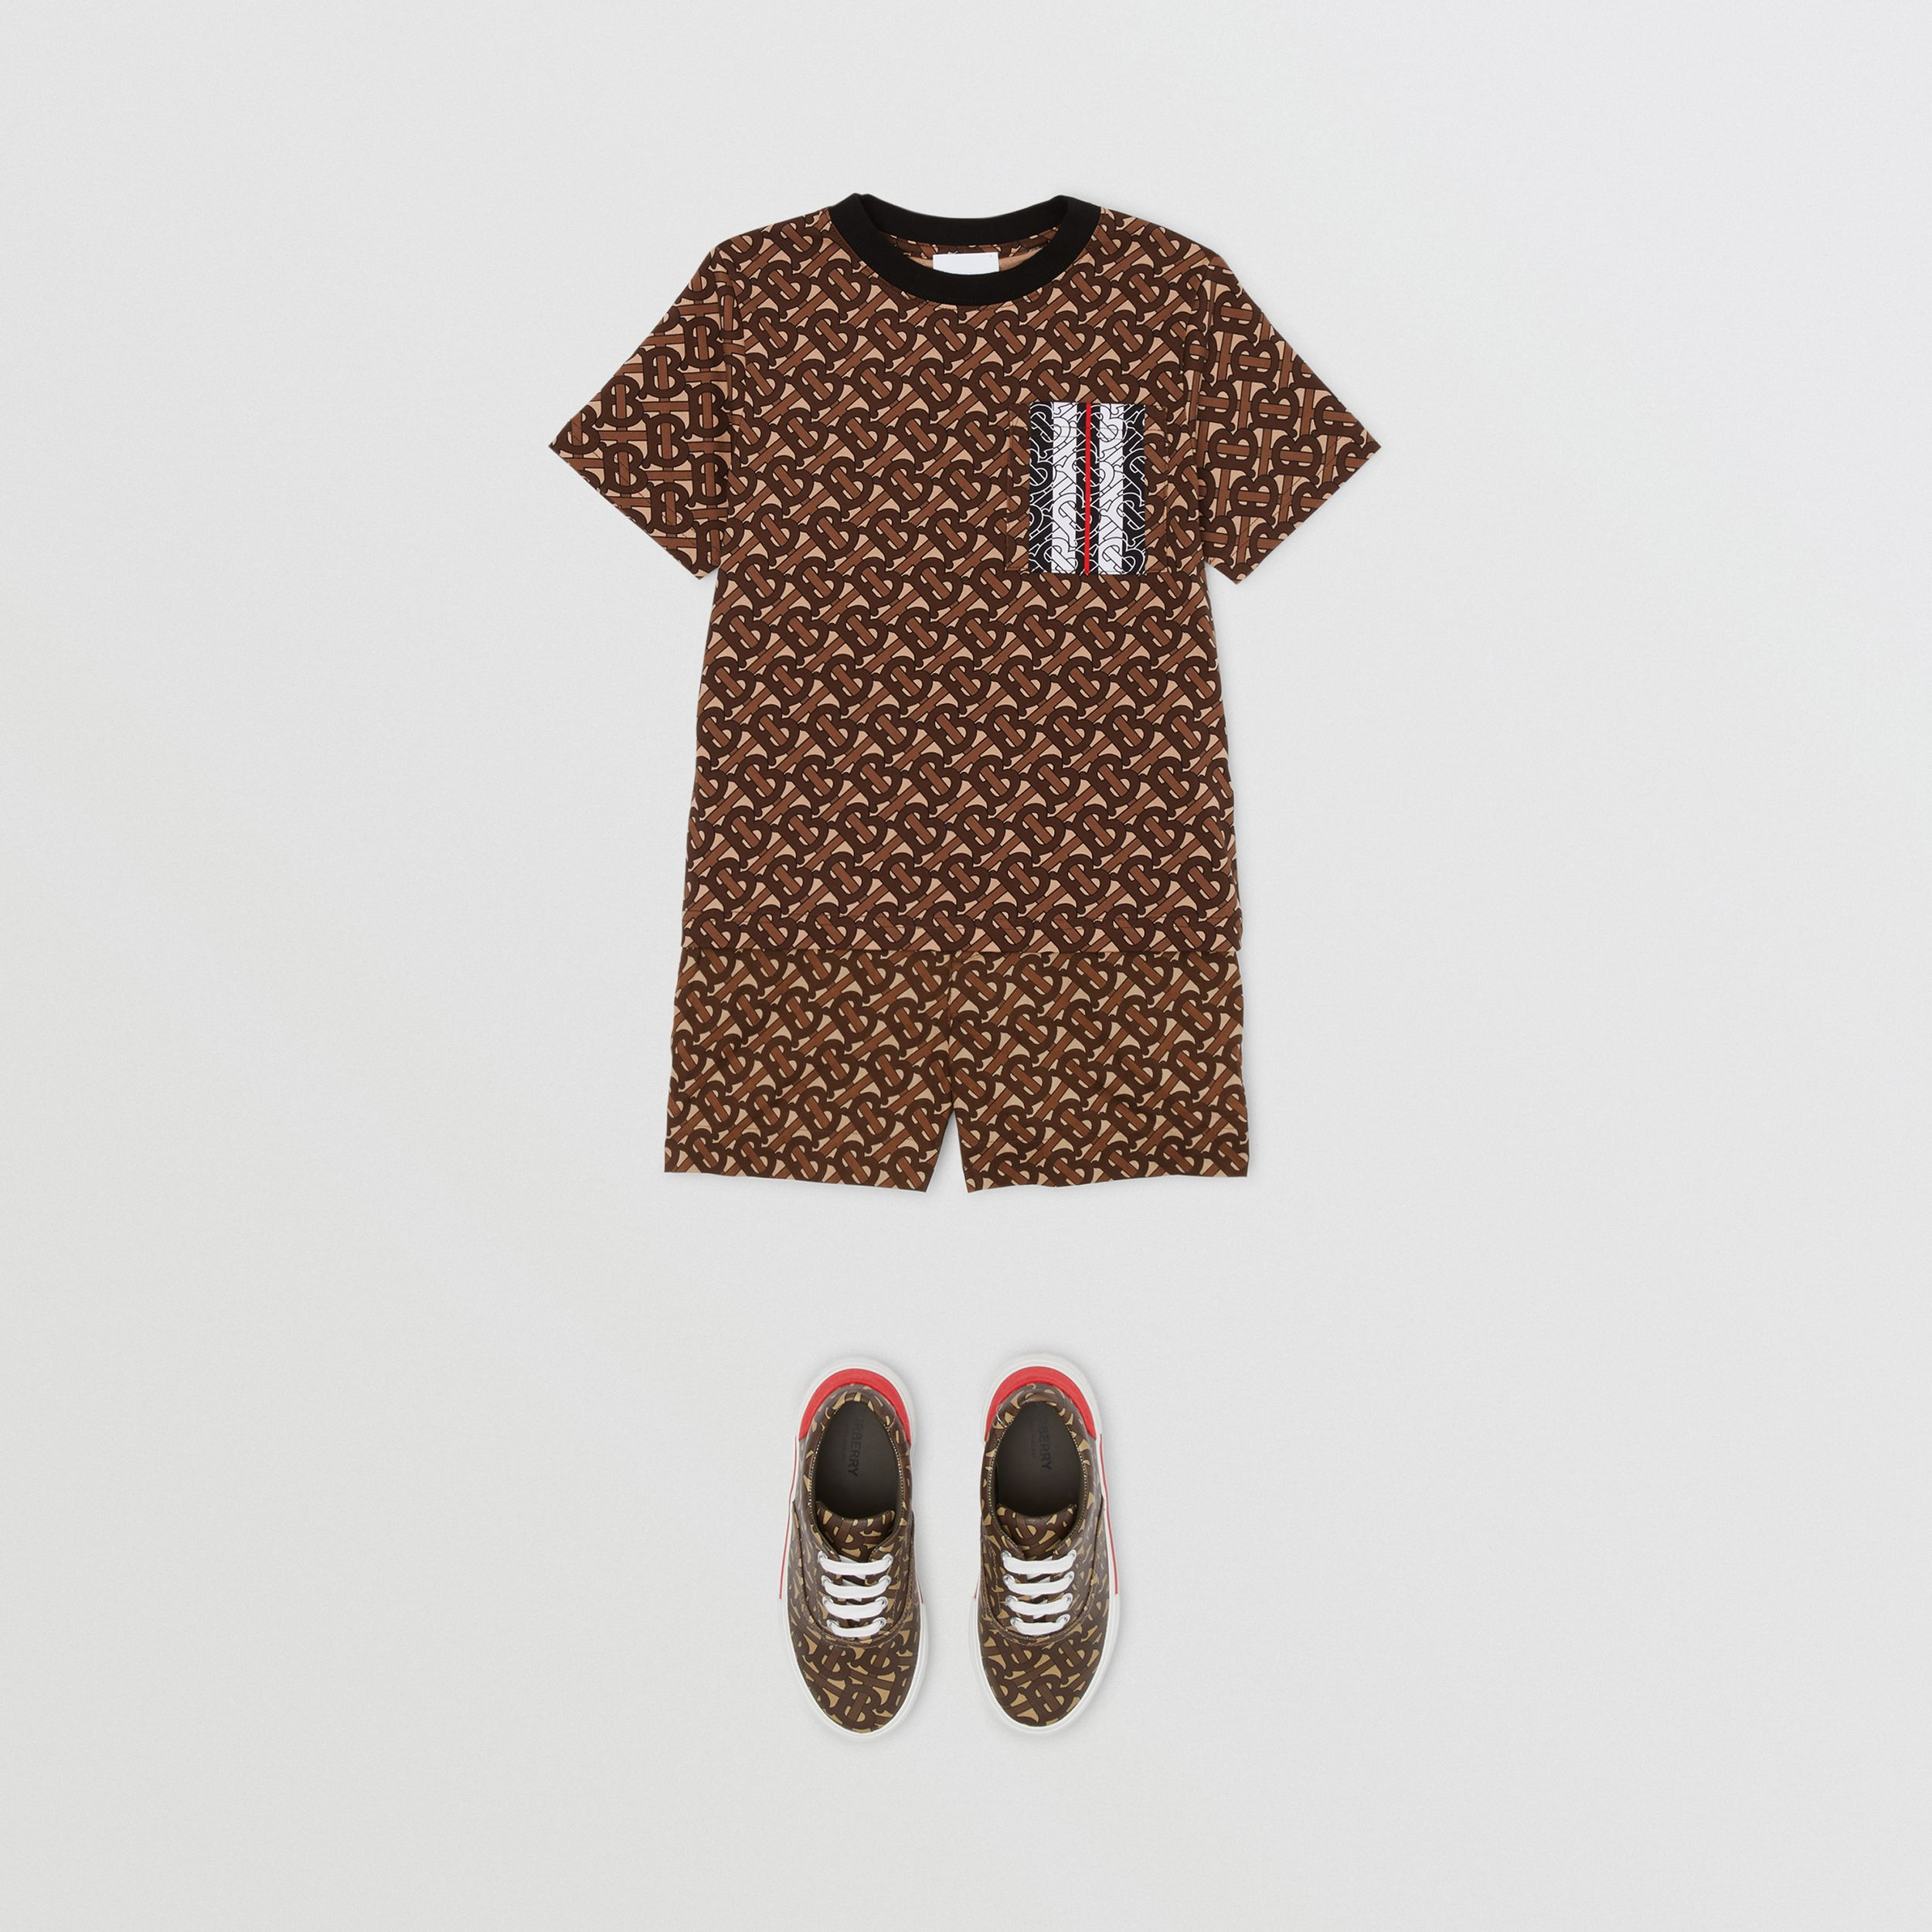 Monogram Stripe Print Cotton T-shirt in Bridle Brown | Burberry - 4